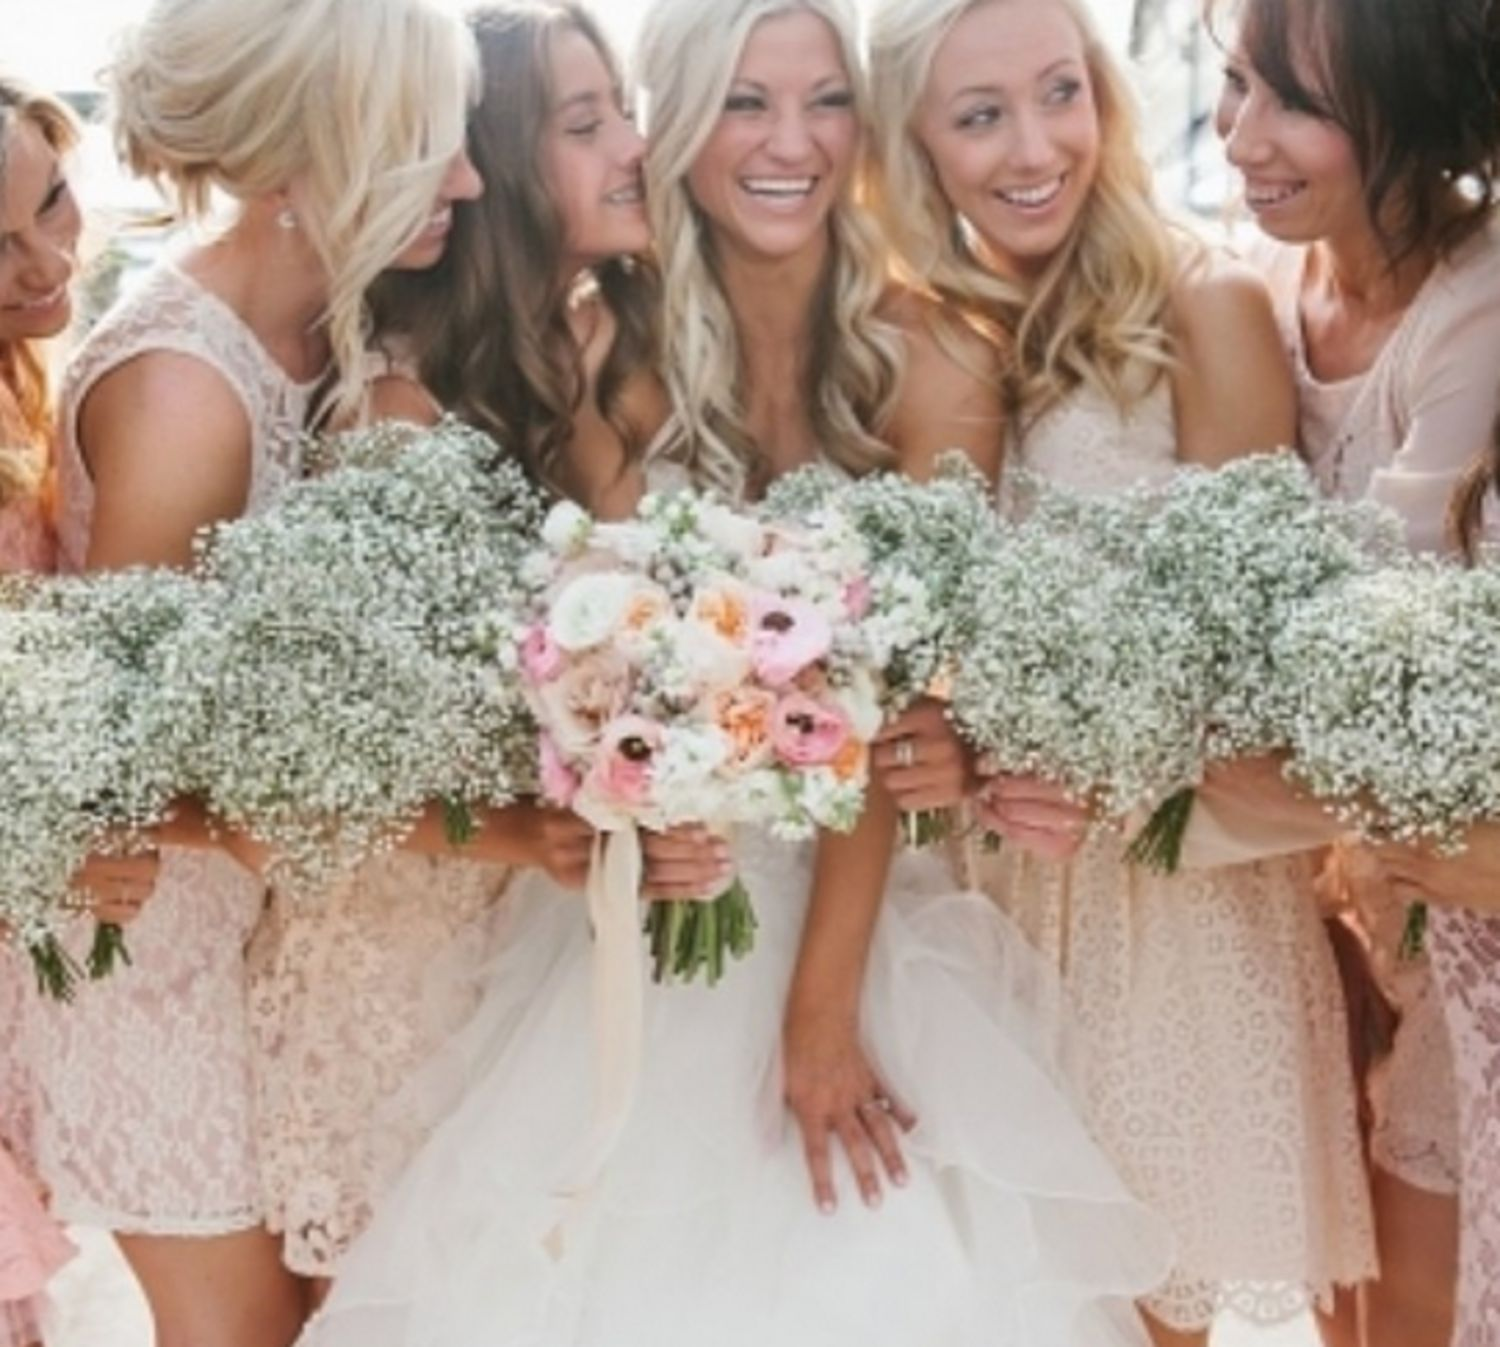 A sweet easy way to do mix and match bridesmaid dresses easy a sweet easy way to do mix and match bridesmaid dresses ombrellifo Images